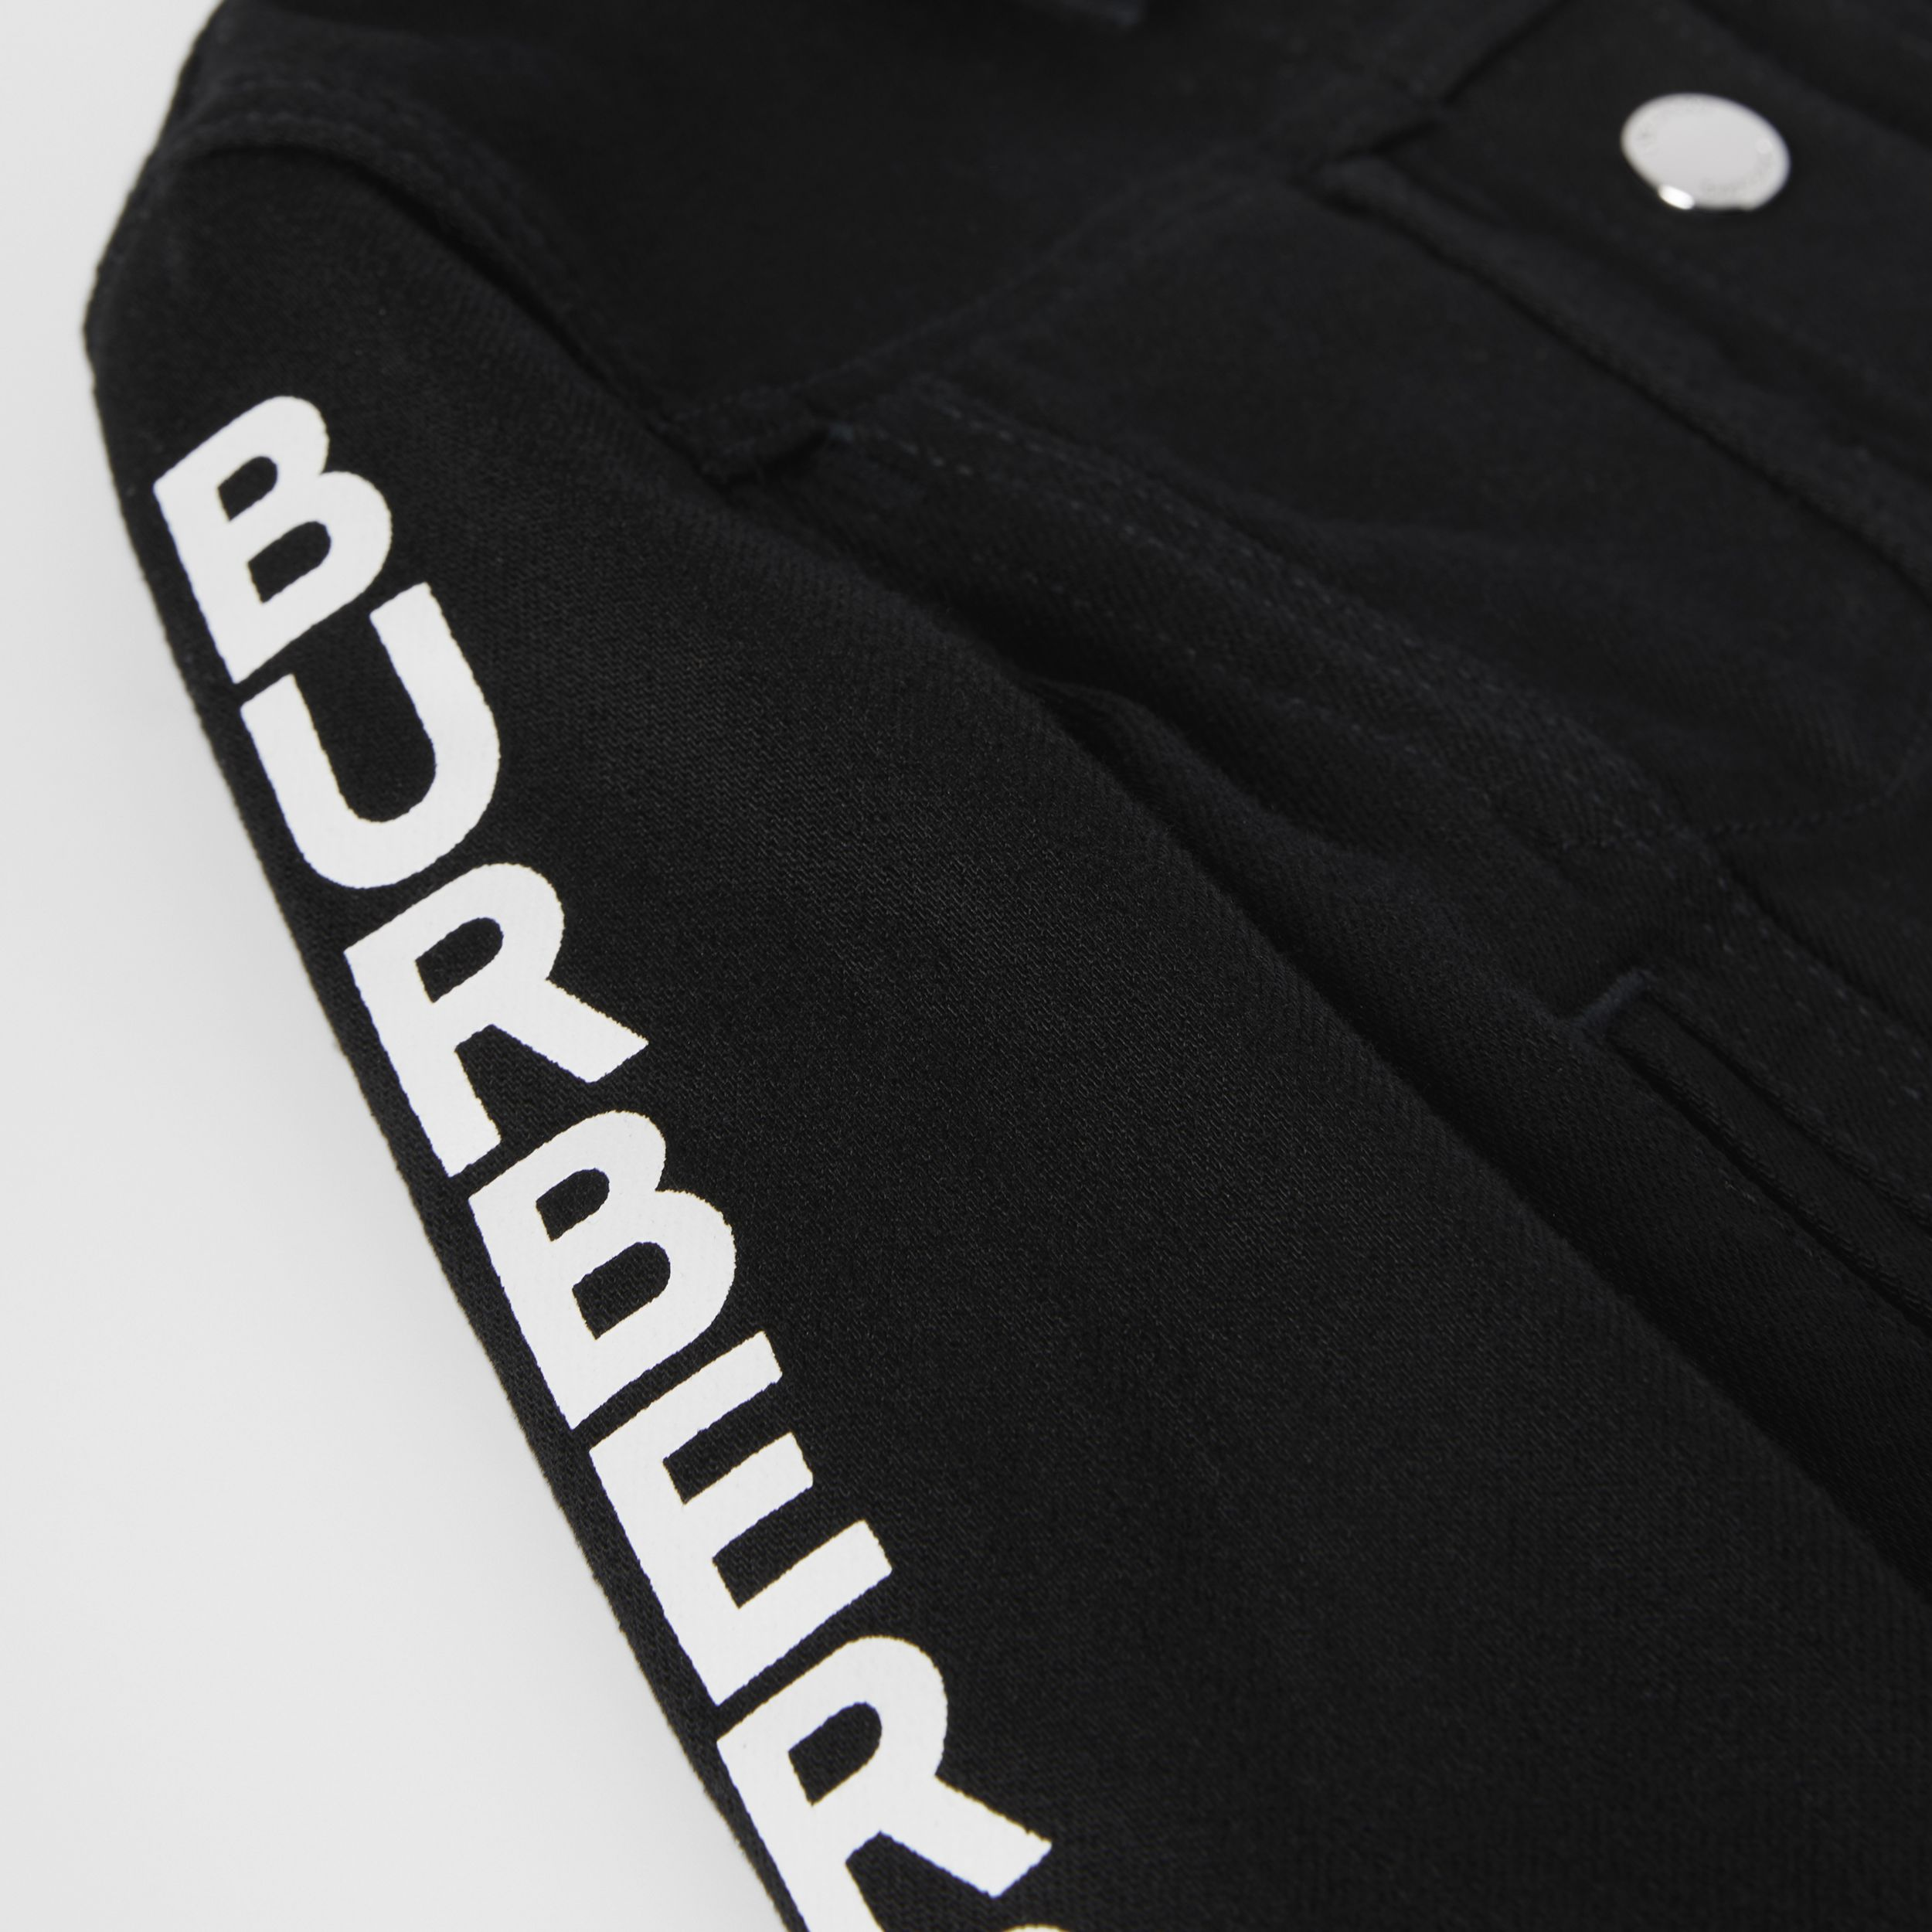 Logo Print Japanese Denim Jacket in Black - Children | Burberry - 2